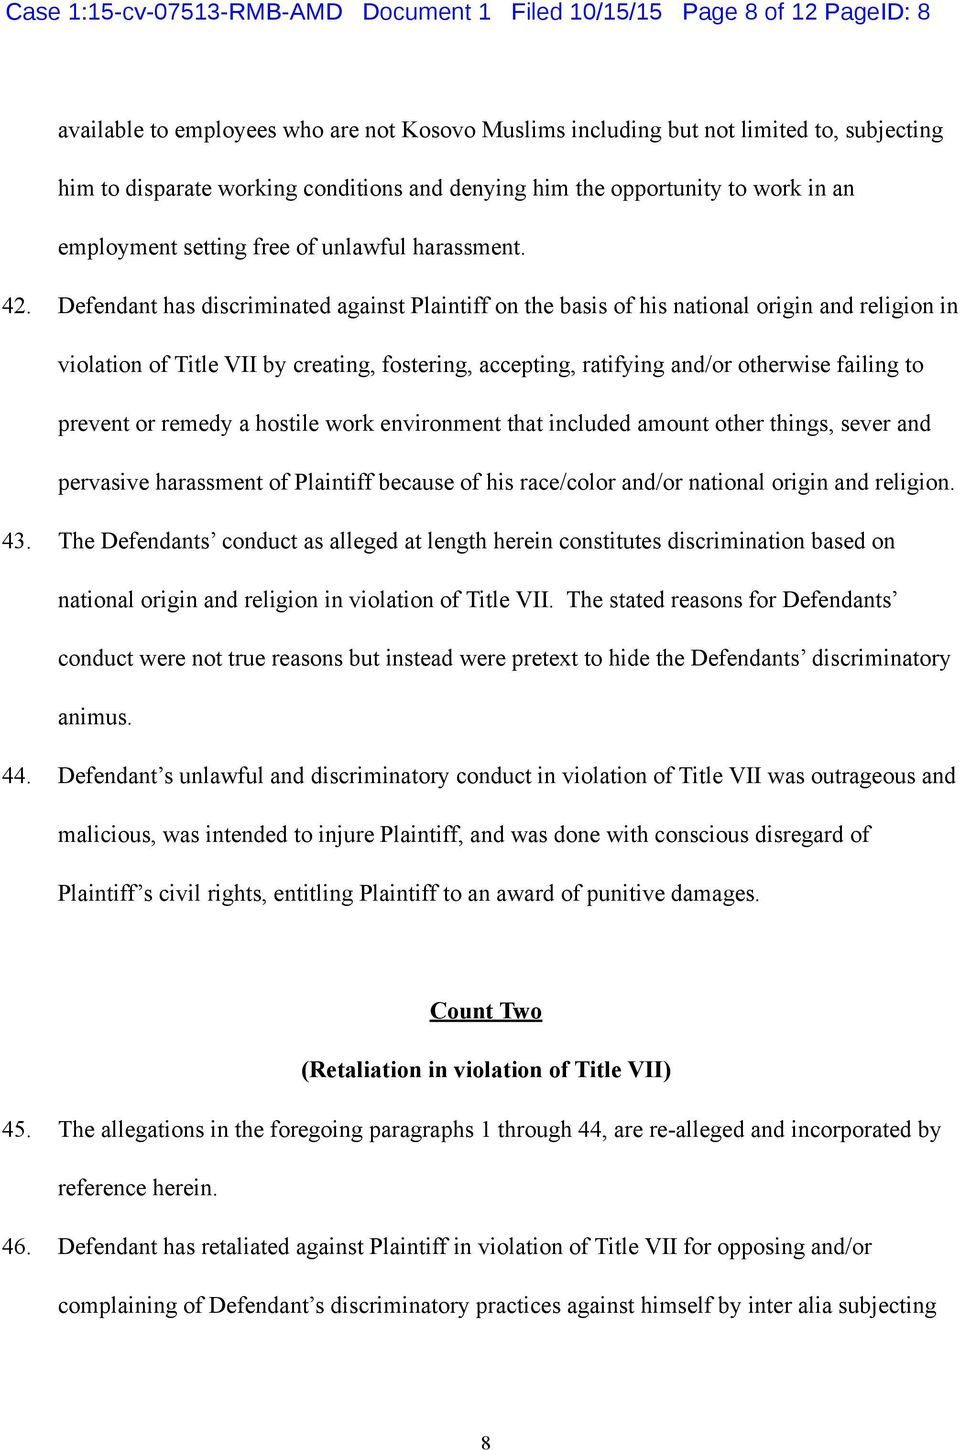 Defendant has discriminated against Plaintiff on the basis of his national origin and religion in violation of Title VII by creating, fostering, accepting, ratifying and/or otherwise failing to